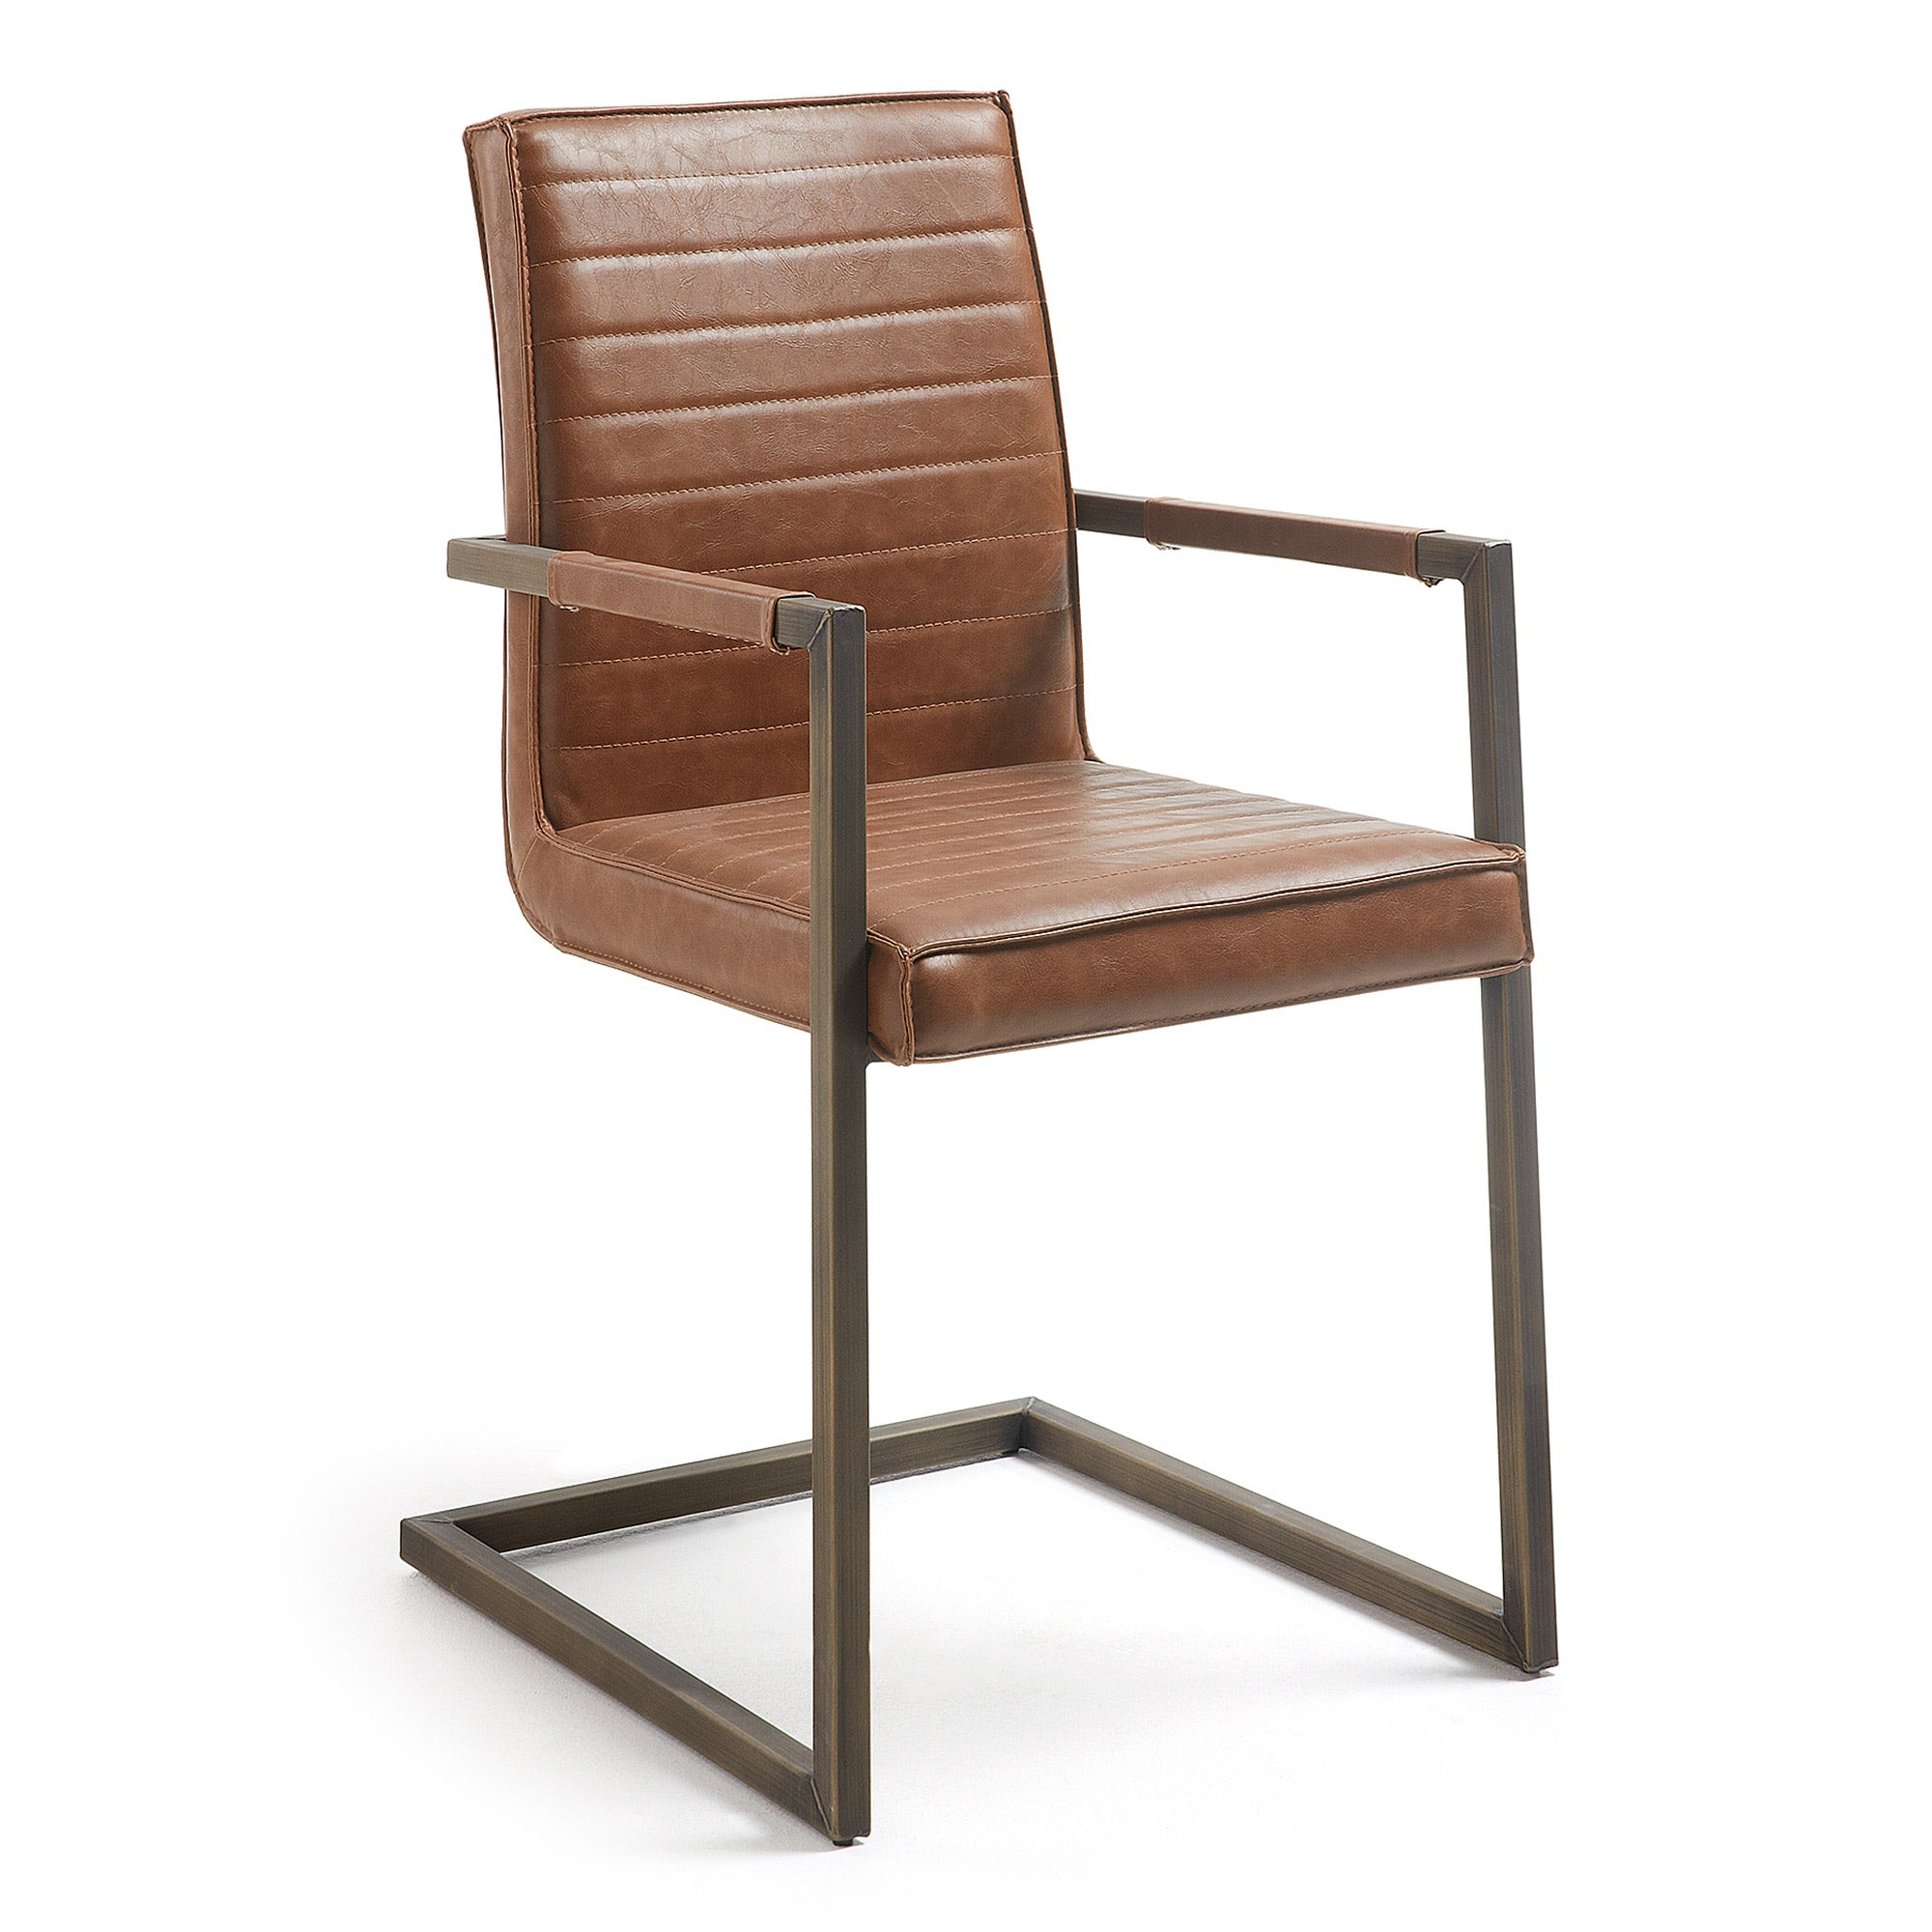 Yula Armchair, Chair - Home-Buy Interiors